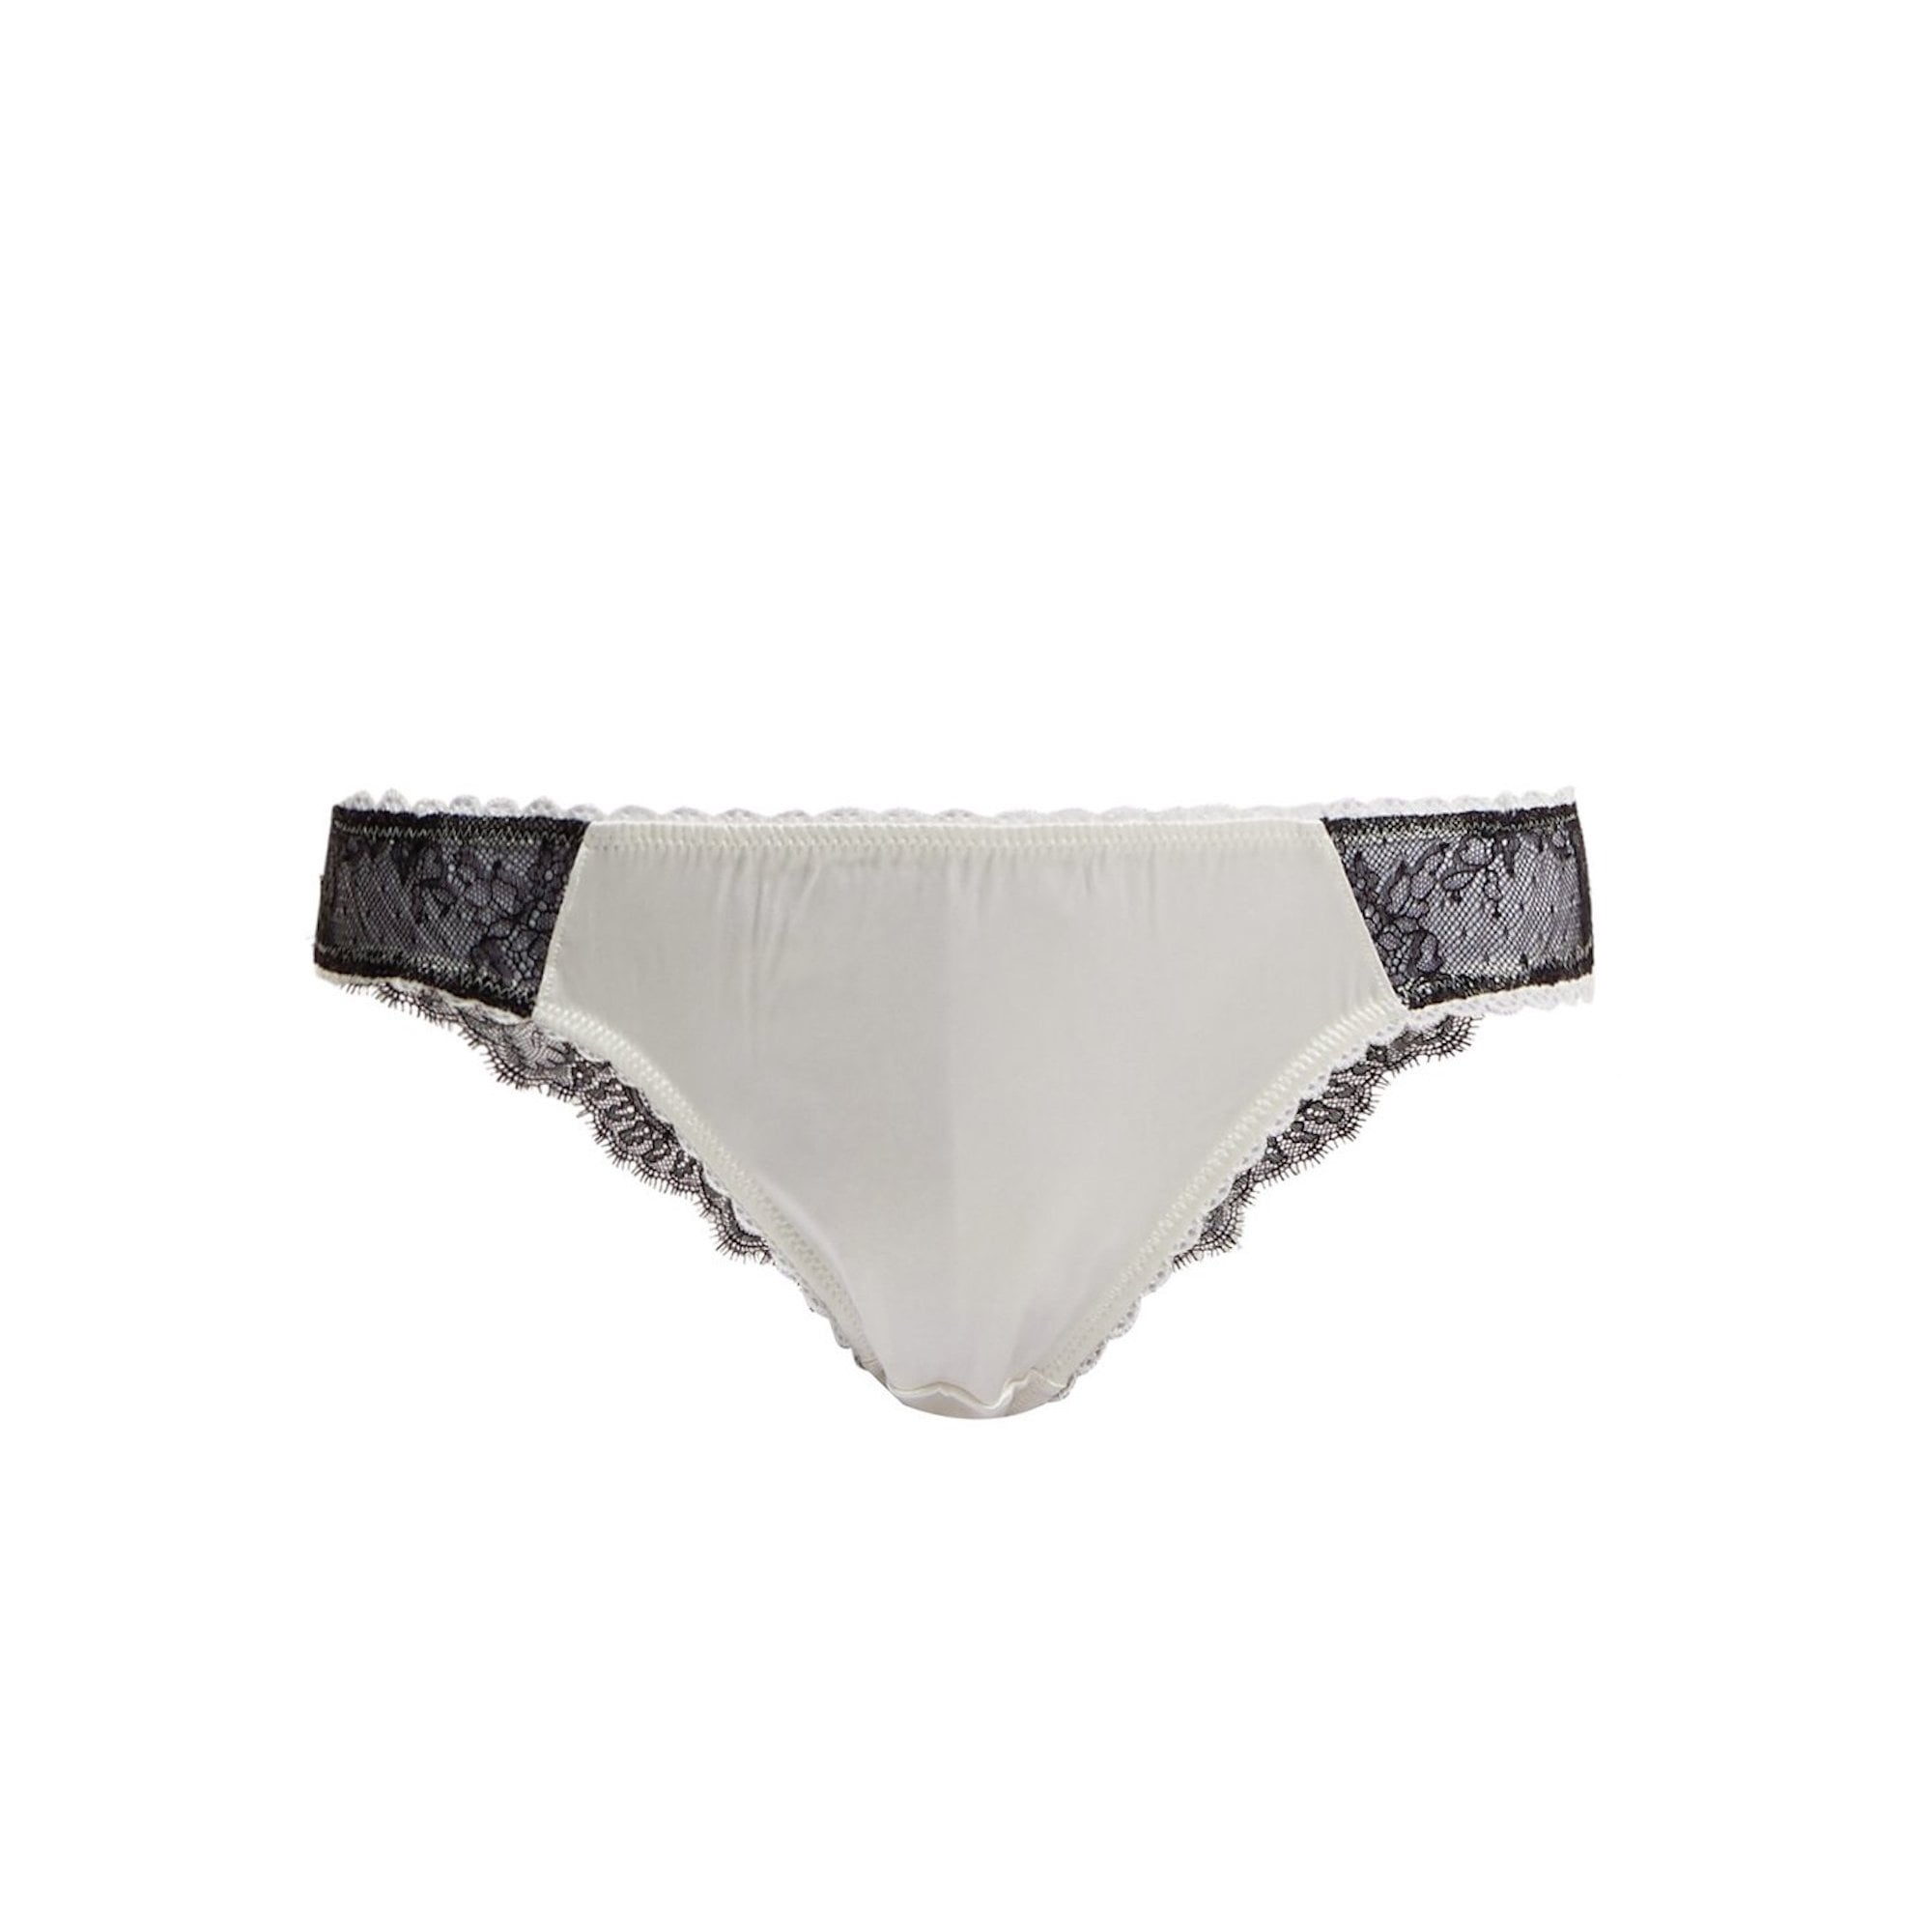 e6b3fa0100203 Gigi Giggling Silk   Lace Briefs - For Her... from The Luxe Company UK